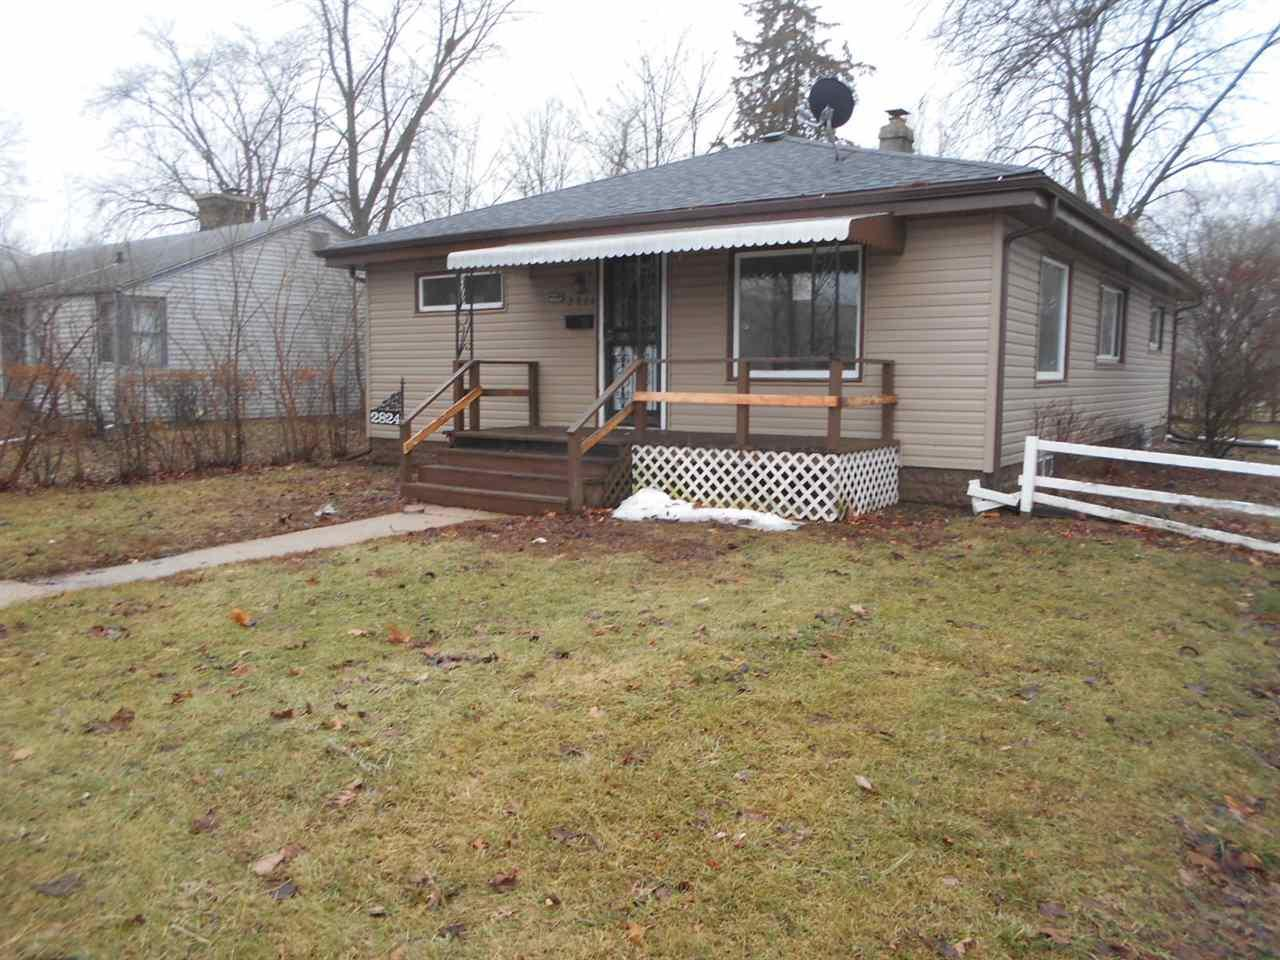 2824 huffman blvd rockford il 61103 estimate and home details